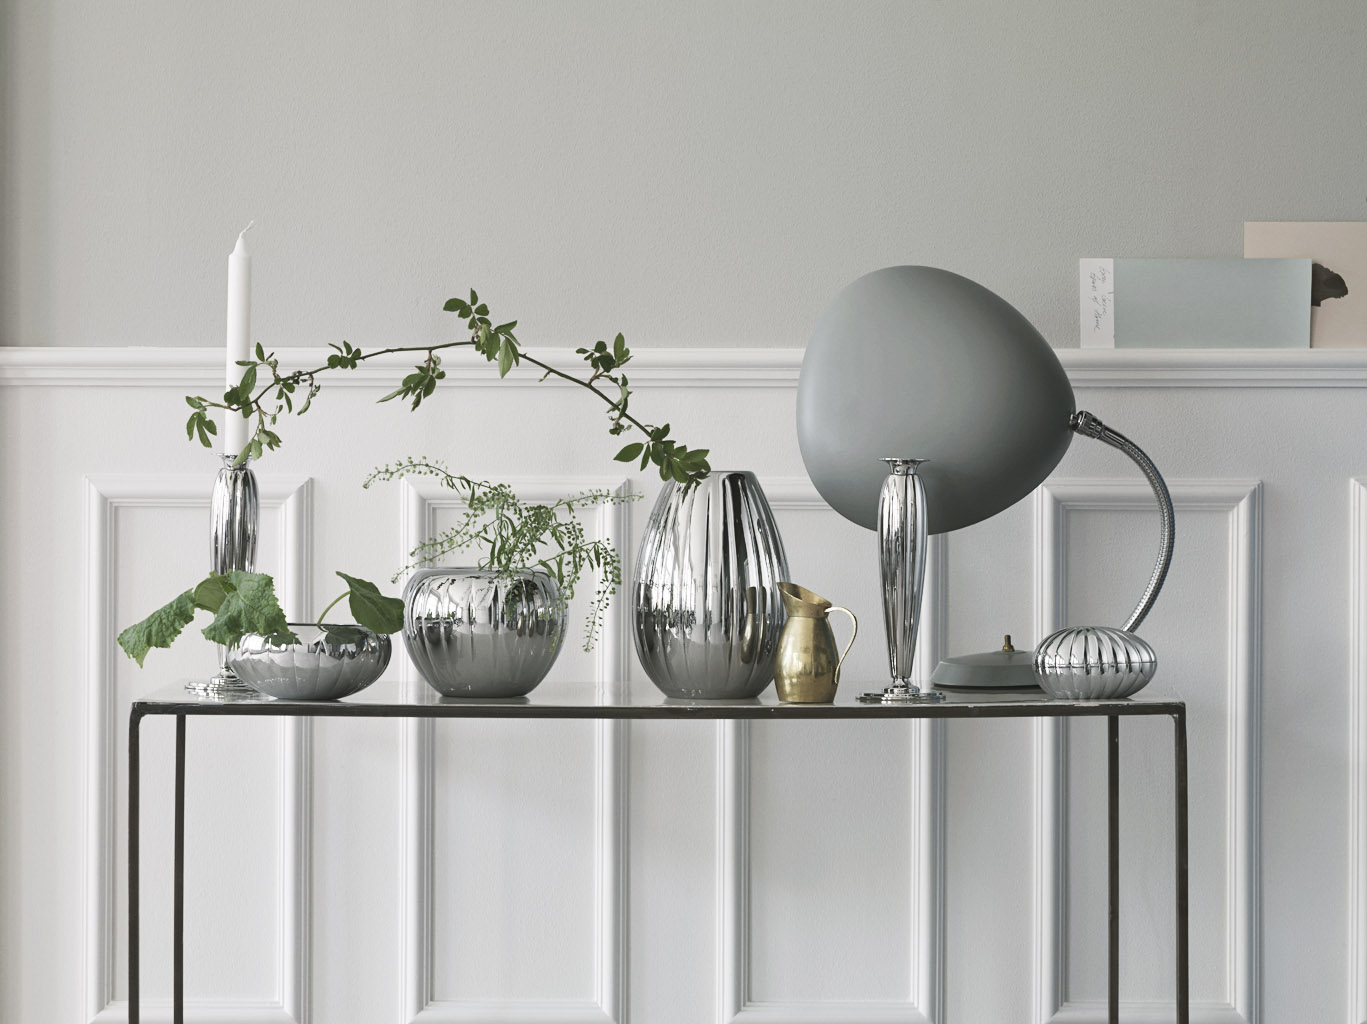 Georg Jensen Online Gift Guide will Help You find the best Design georg jensen Georg Jensen Online Gift Guide will Help You find the best Design Georg Jensen Online Gift Guide will Help You find the best Christmas Presents 3